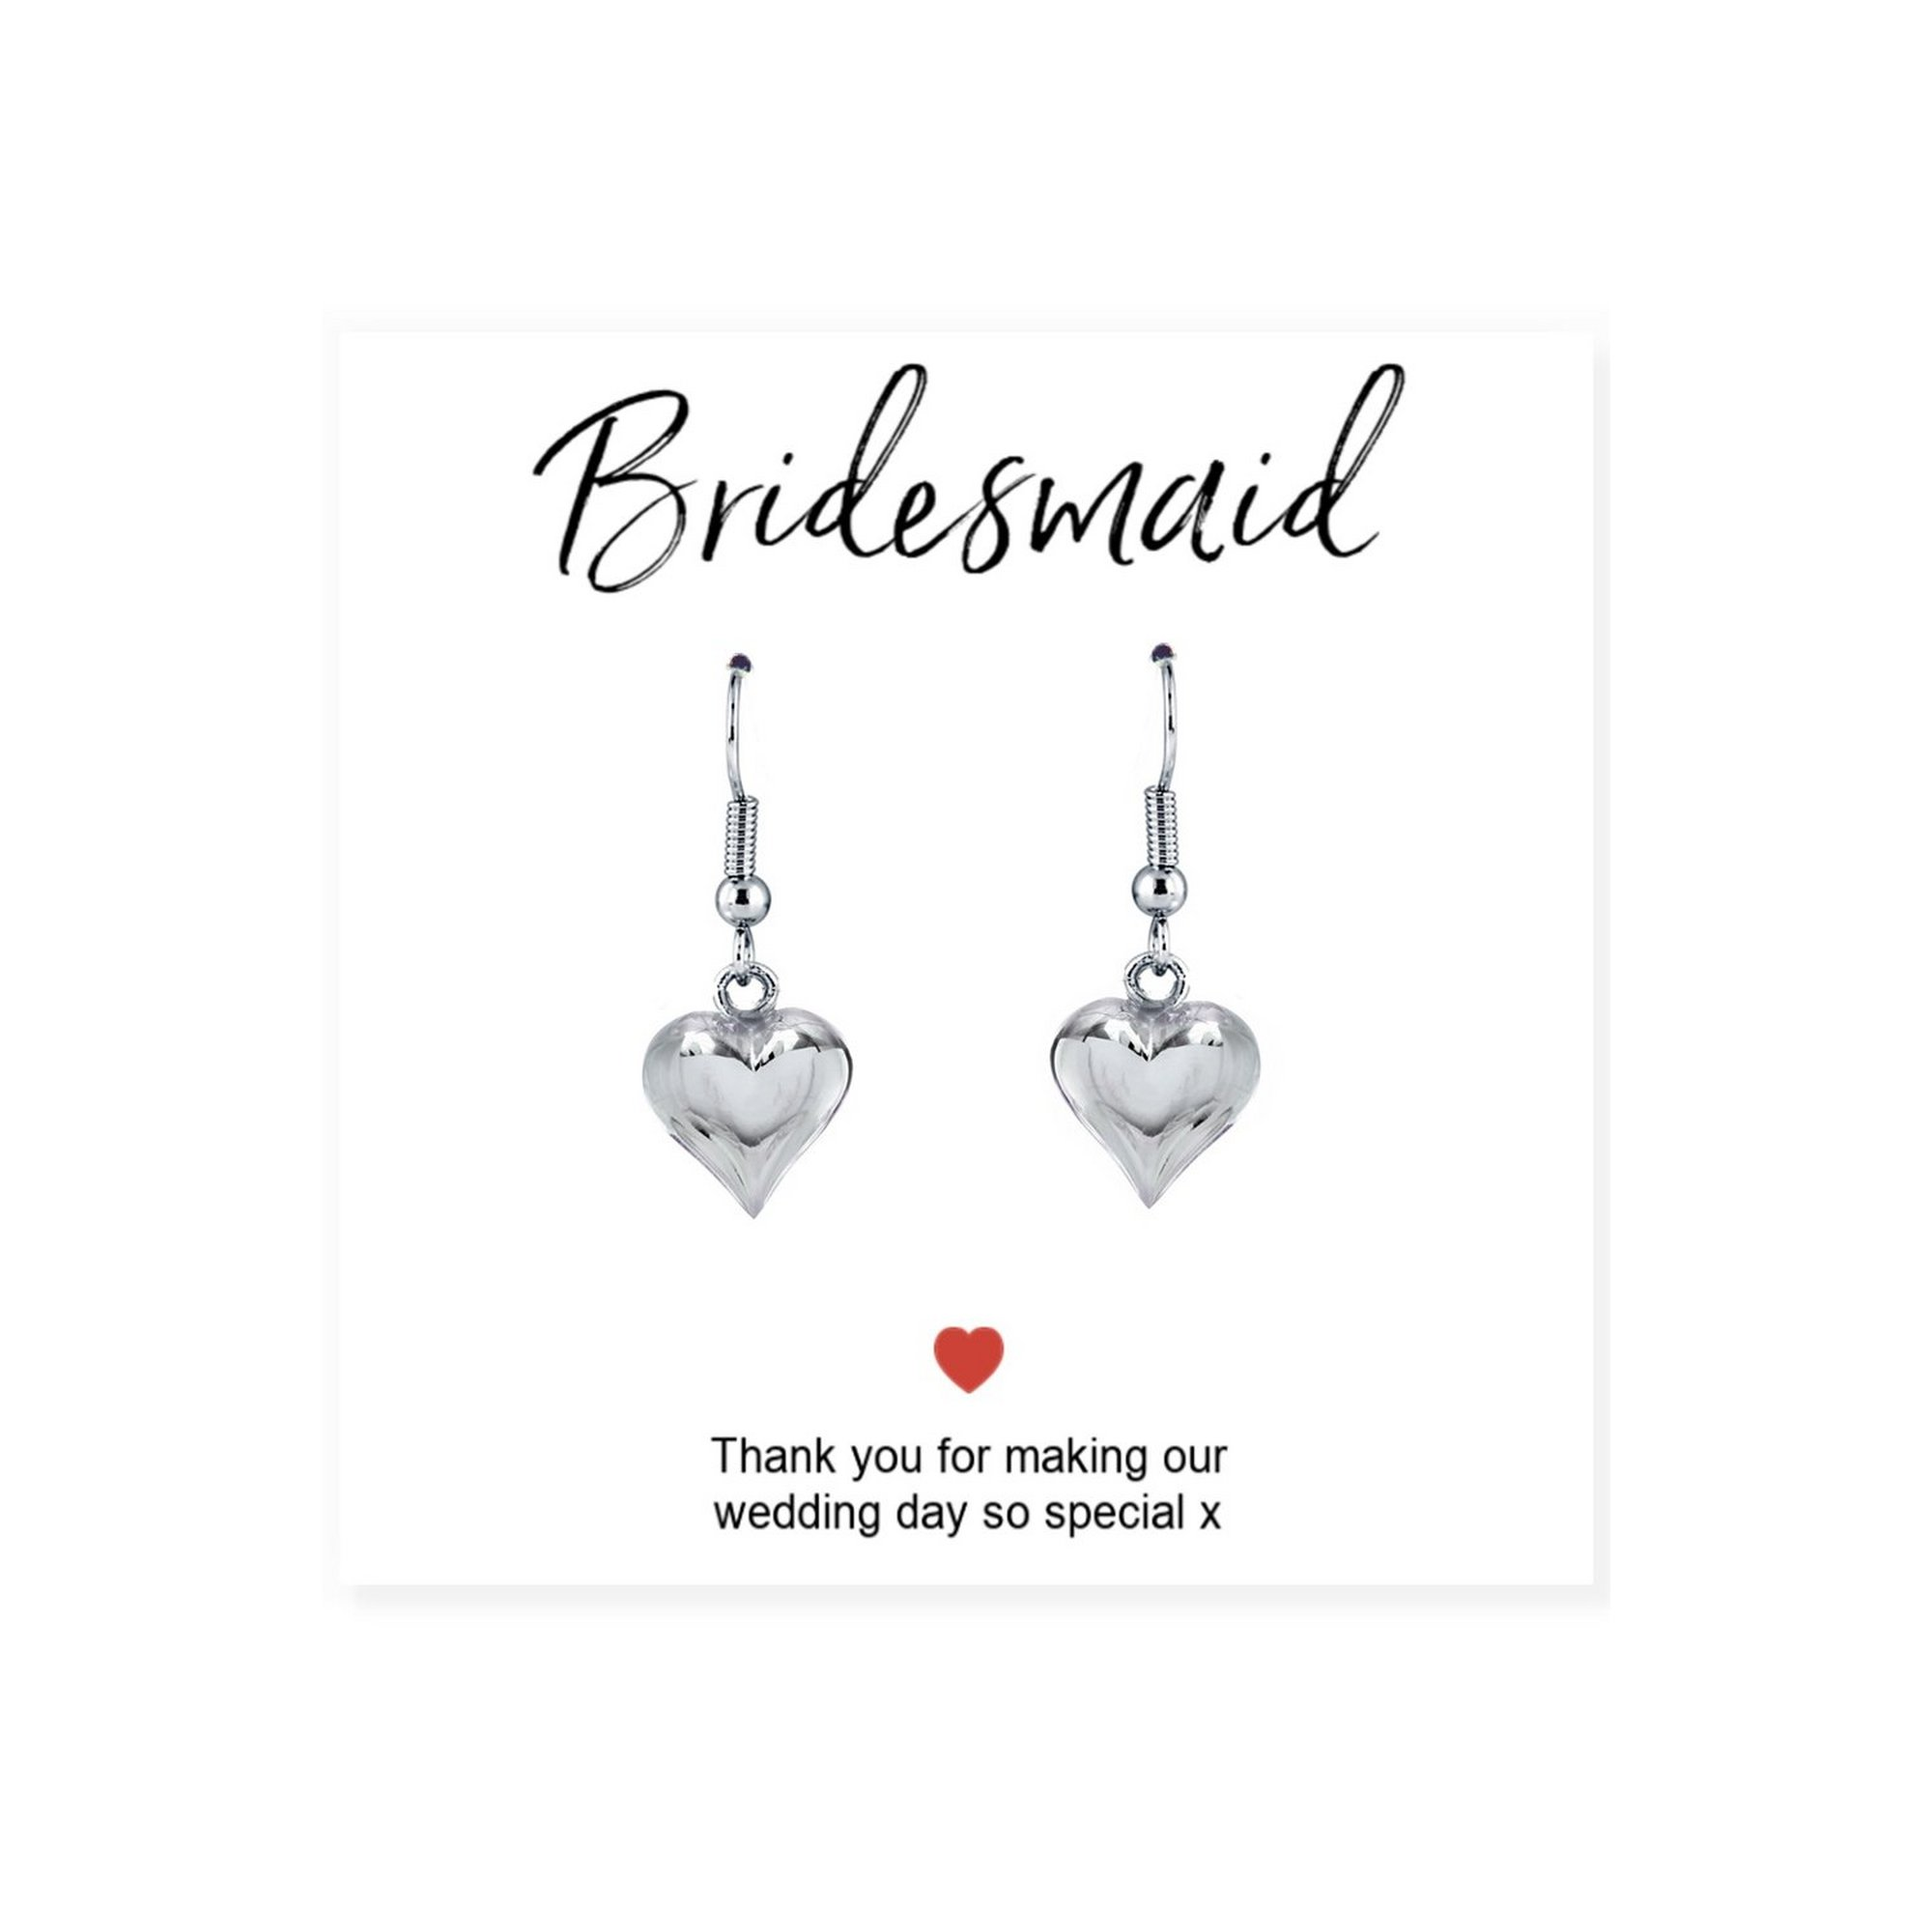 Image of Bridesmaids Heart Earrings and Thank You Card